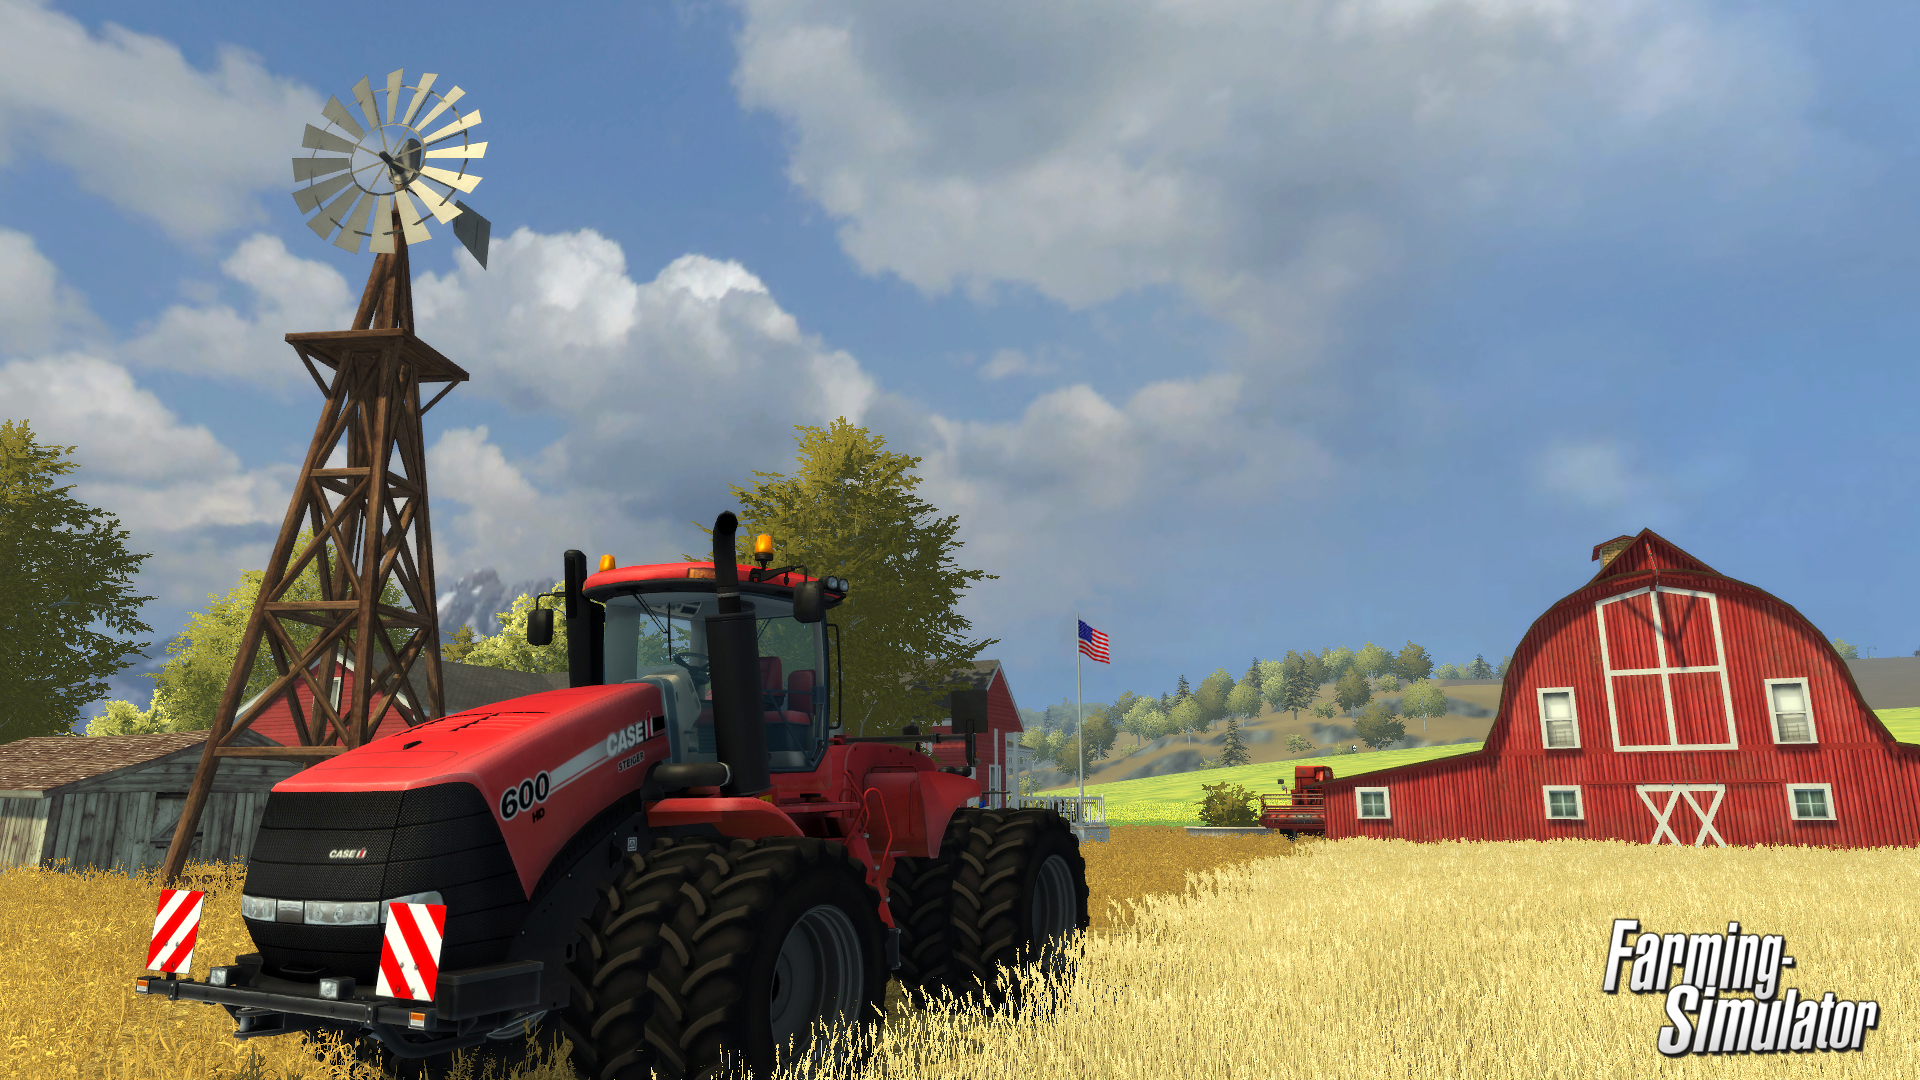 Brace Yourselves: Farming Simulator 2013 is Coming to Consoles